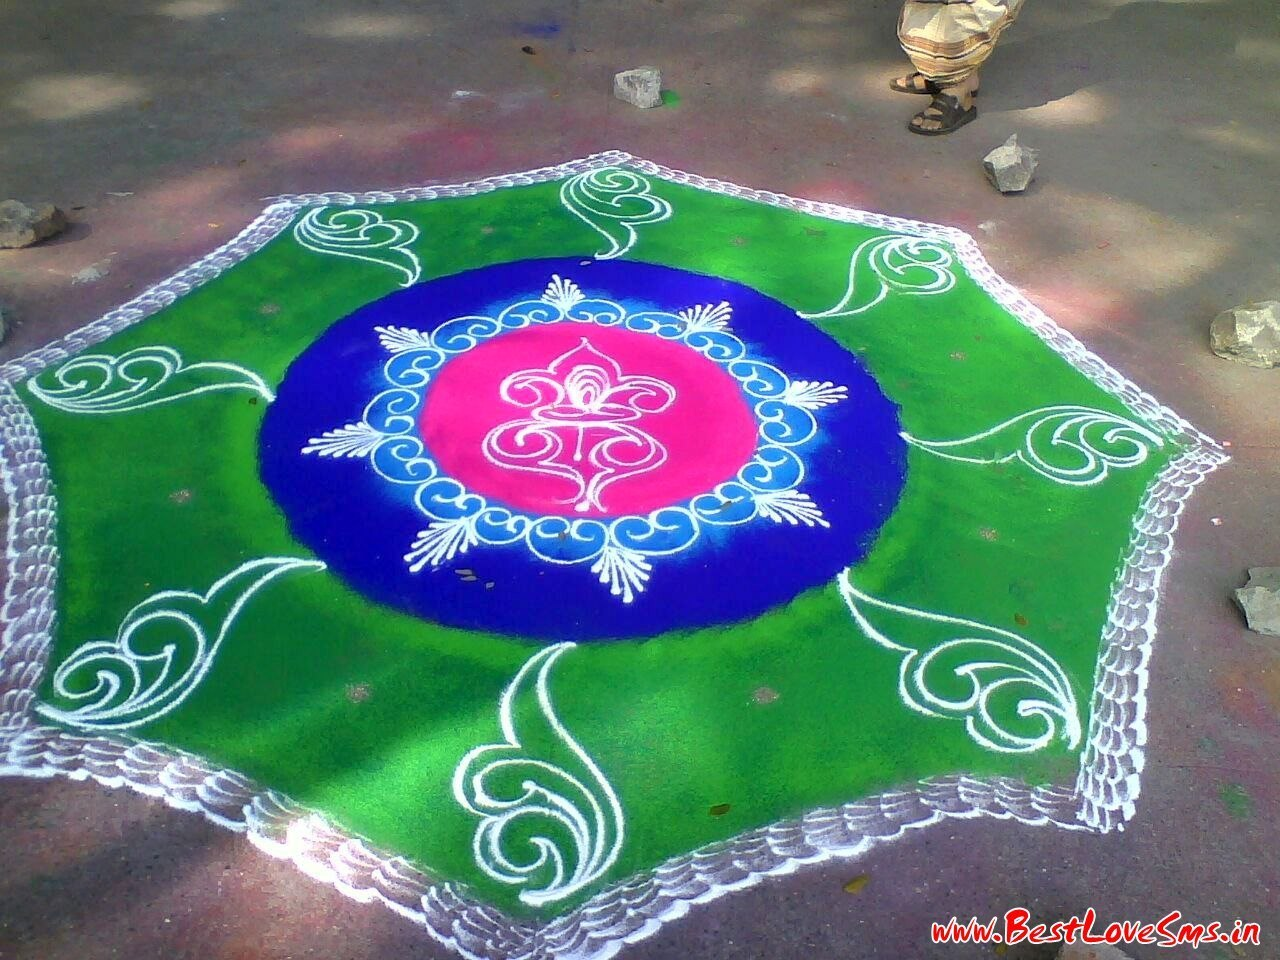 Homemade rangoli designs simple homemade ftempo for Home made rangoli designs